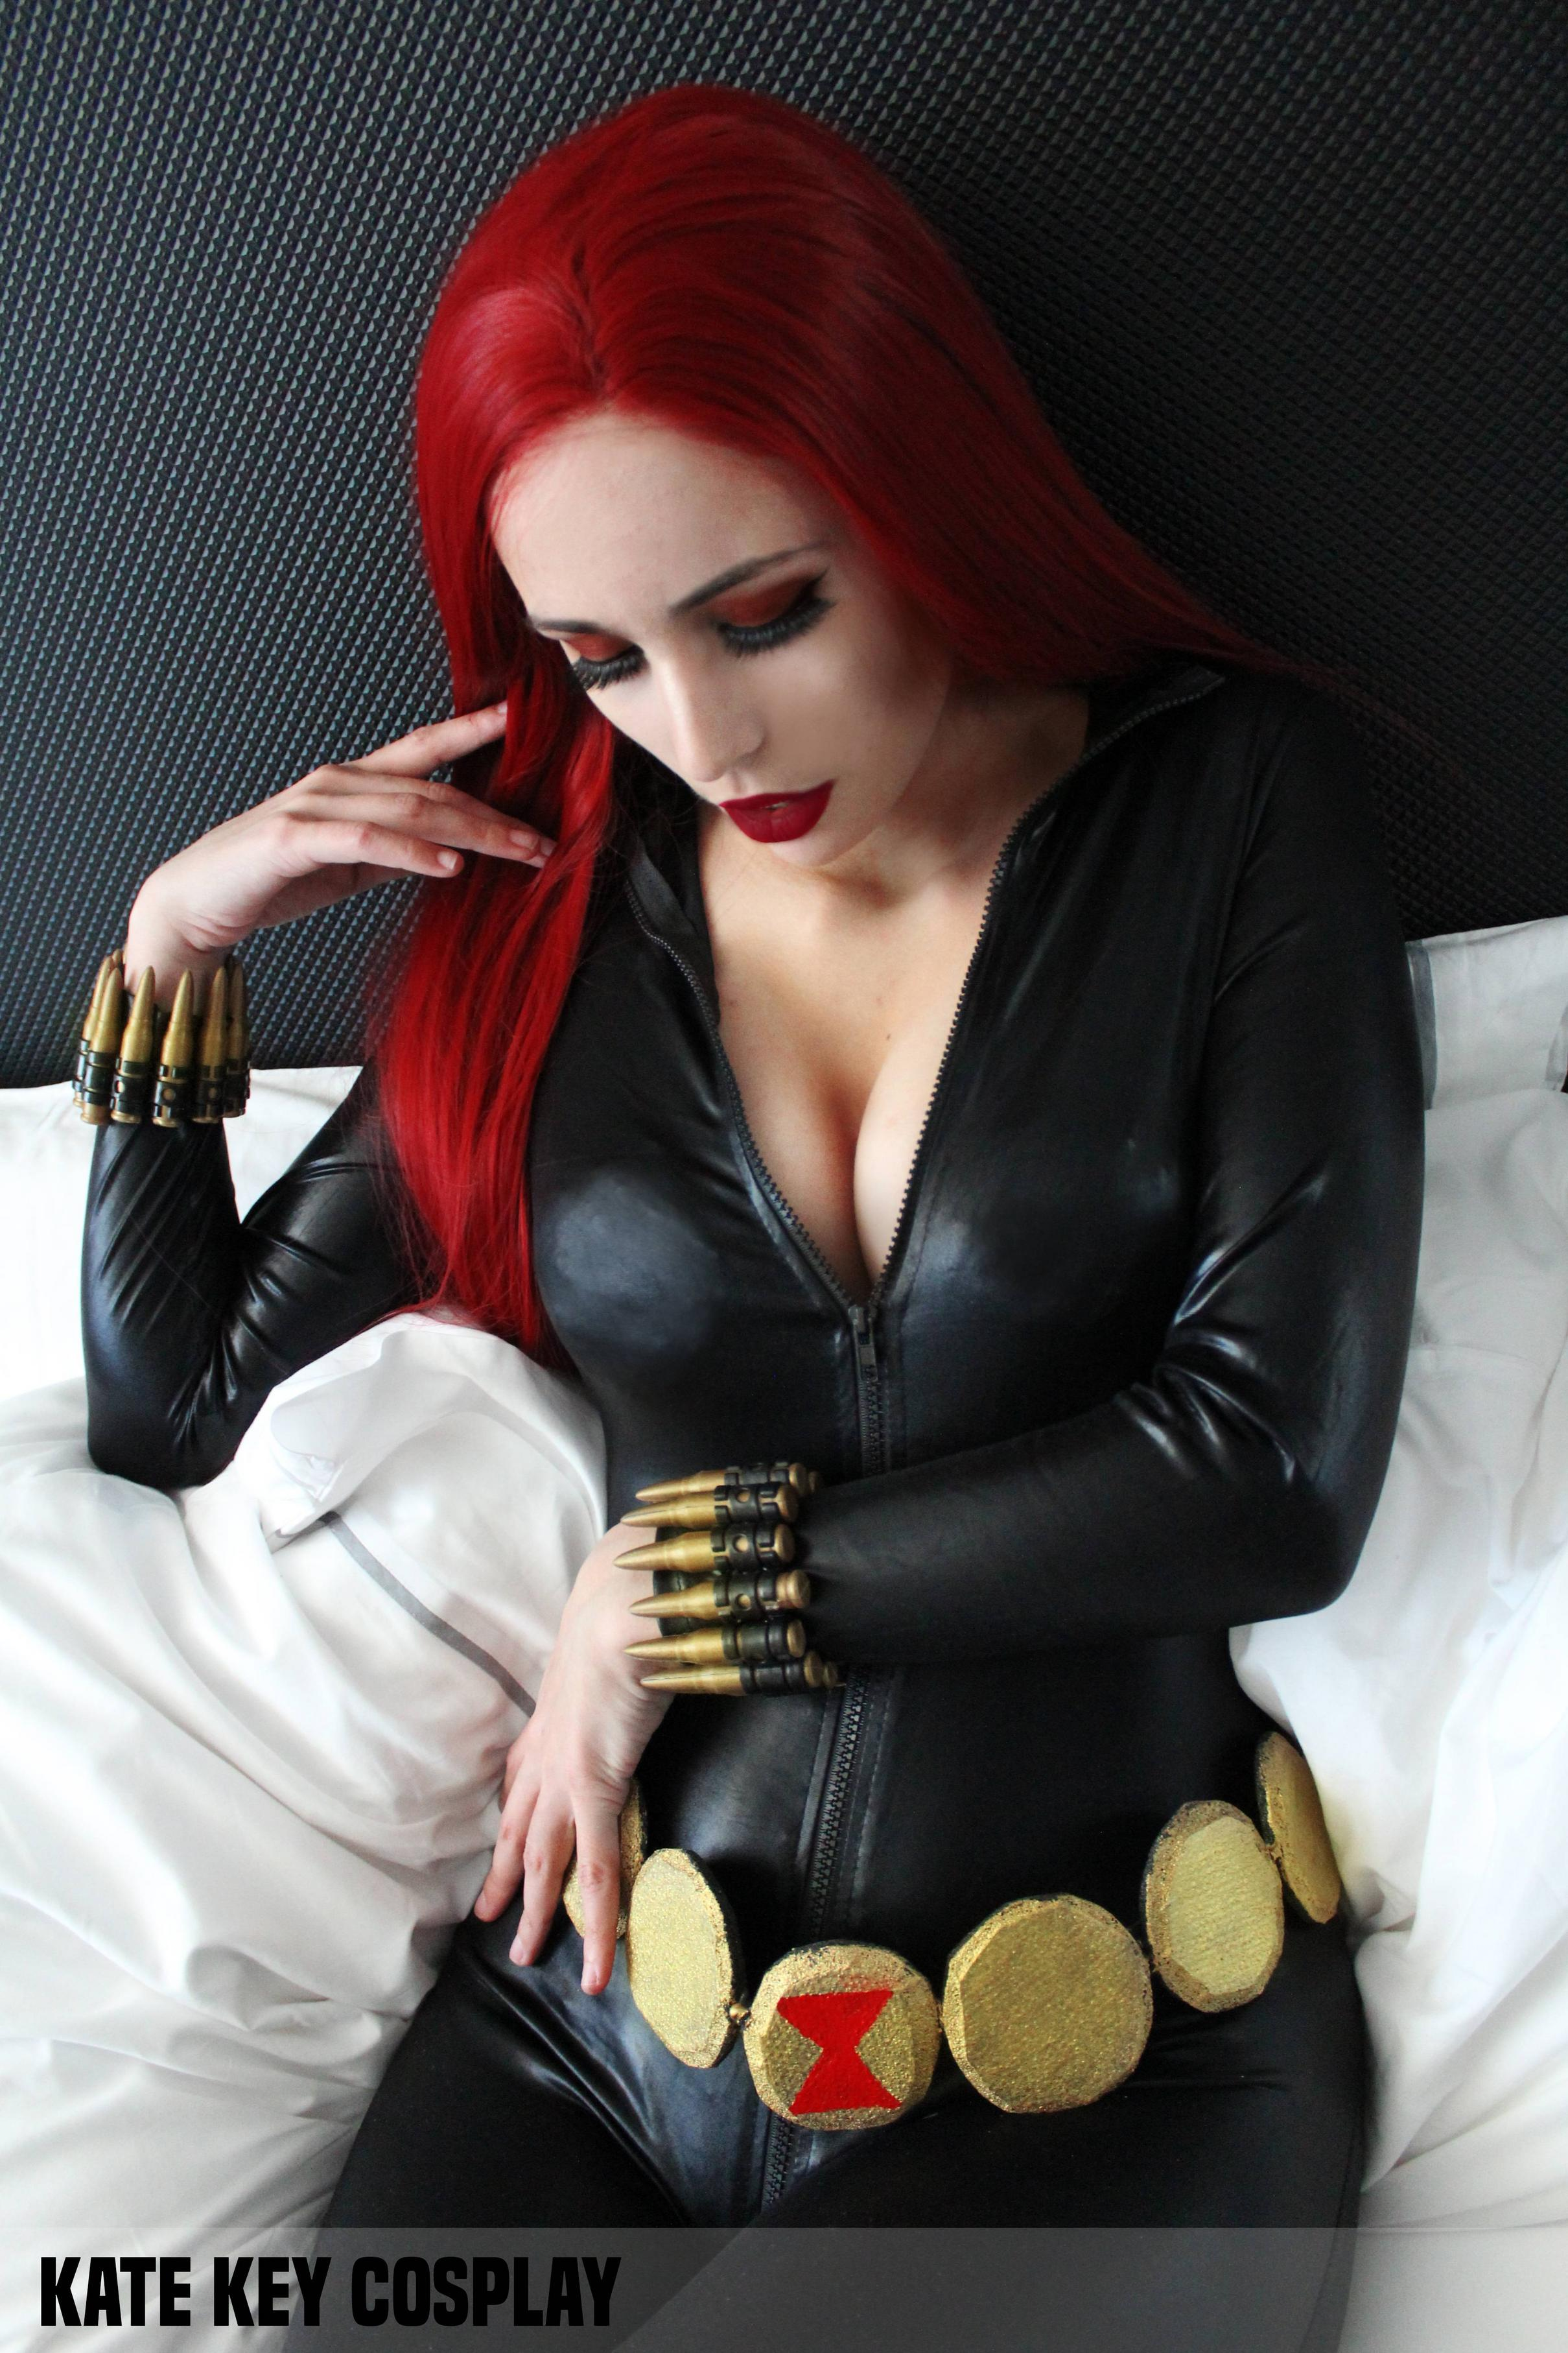 Black Widow From MARVEL By Kate Key